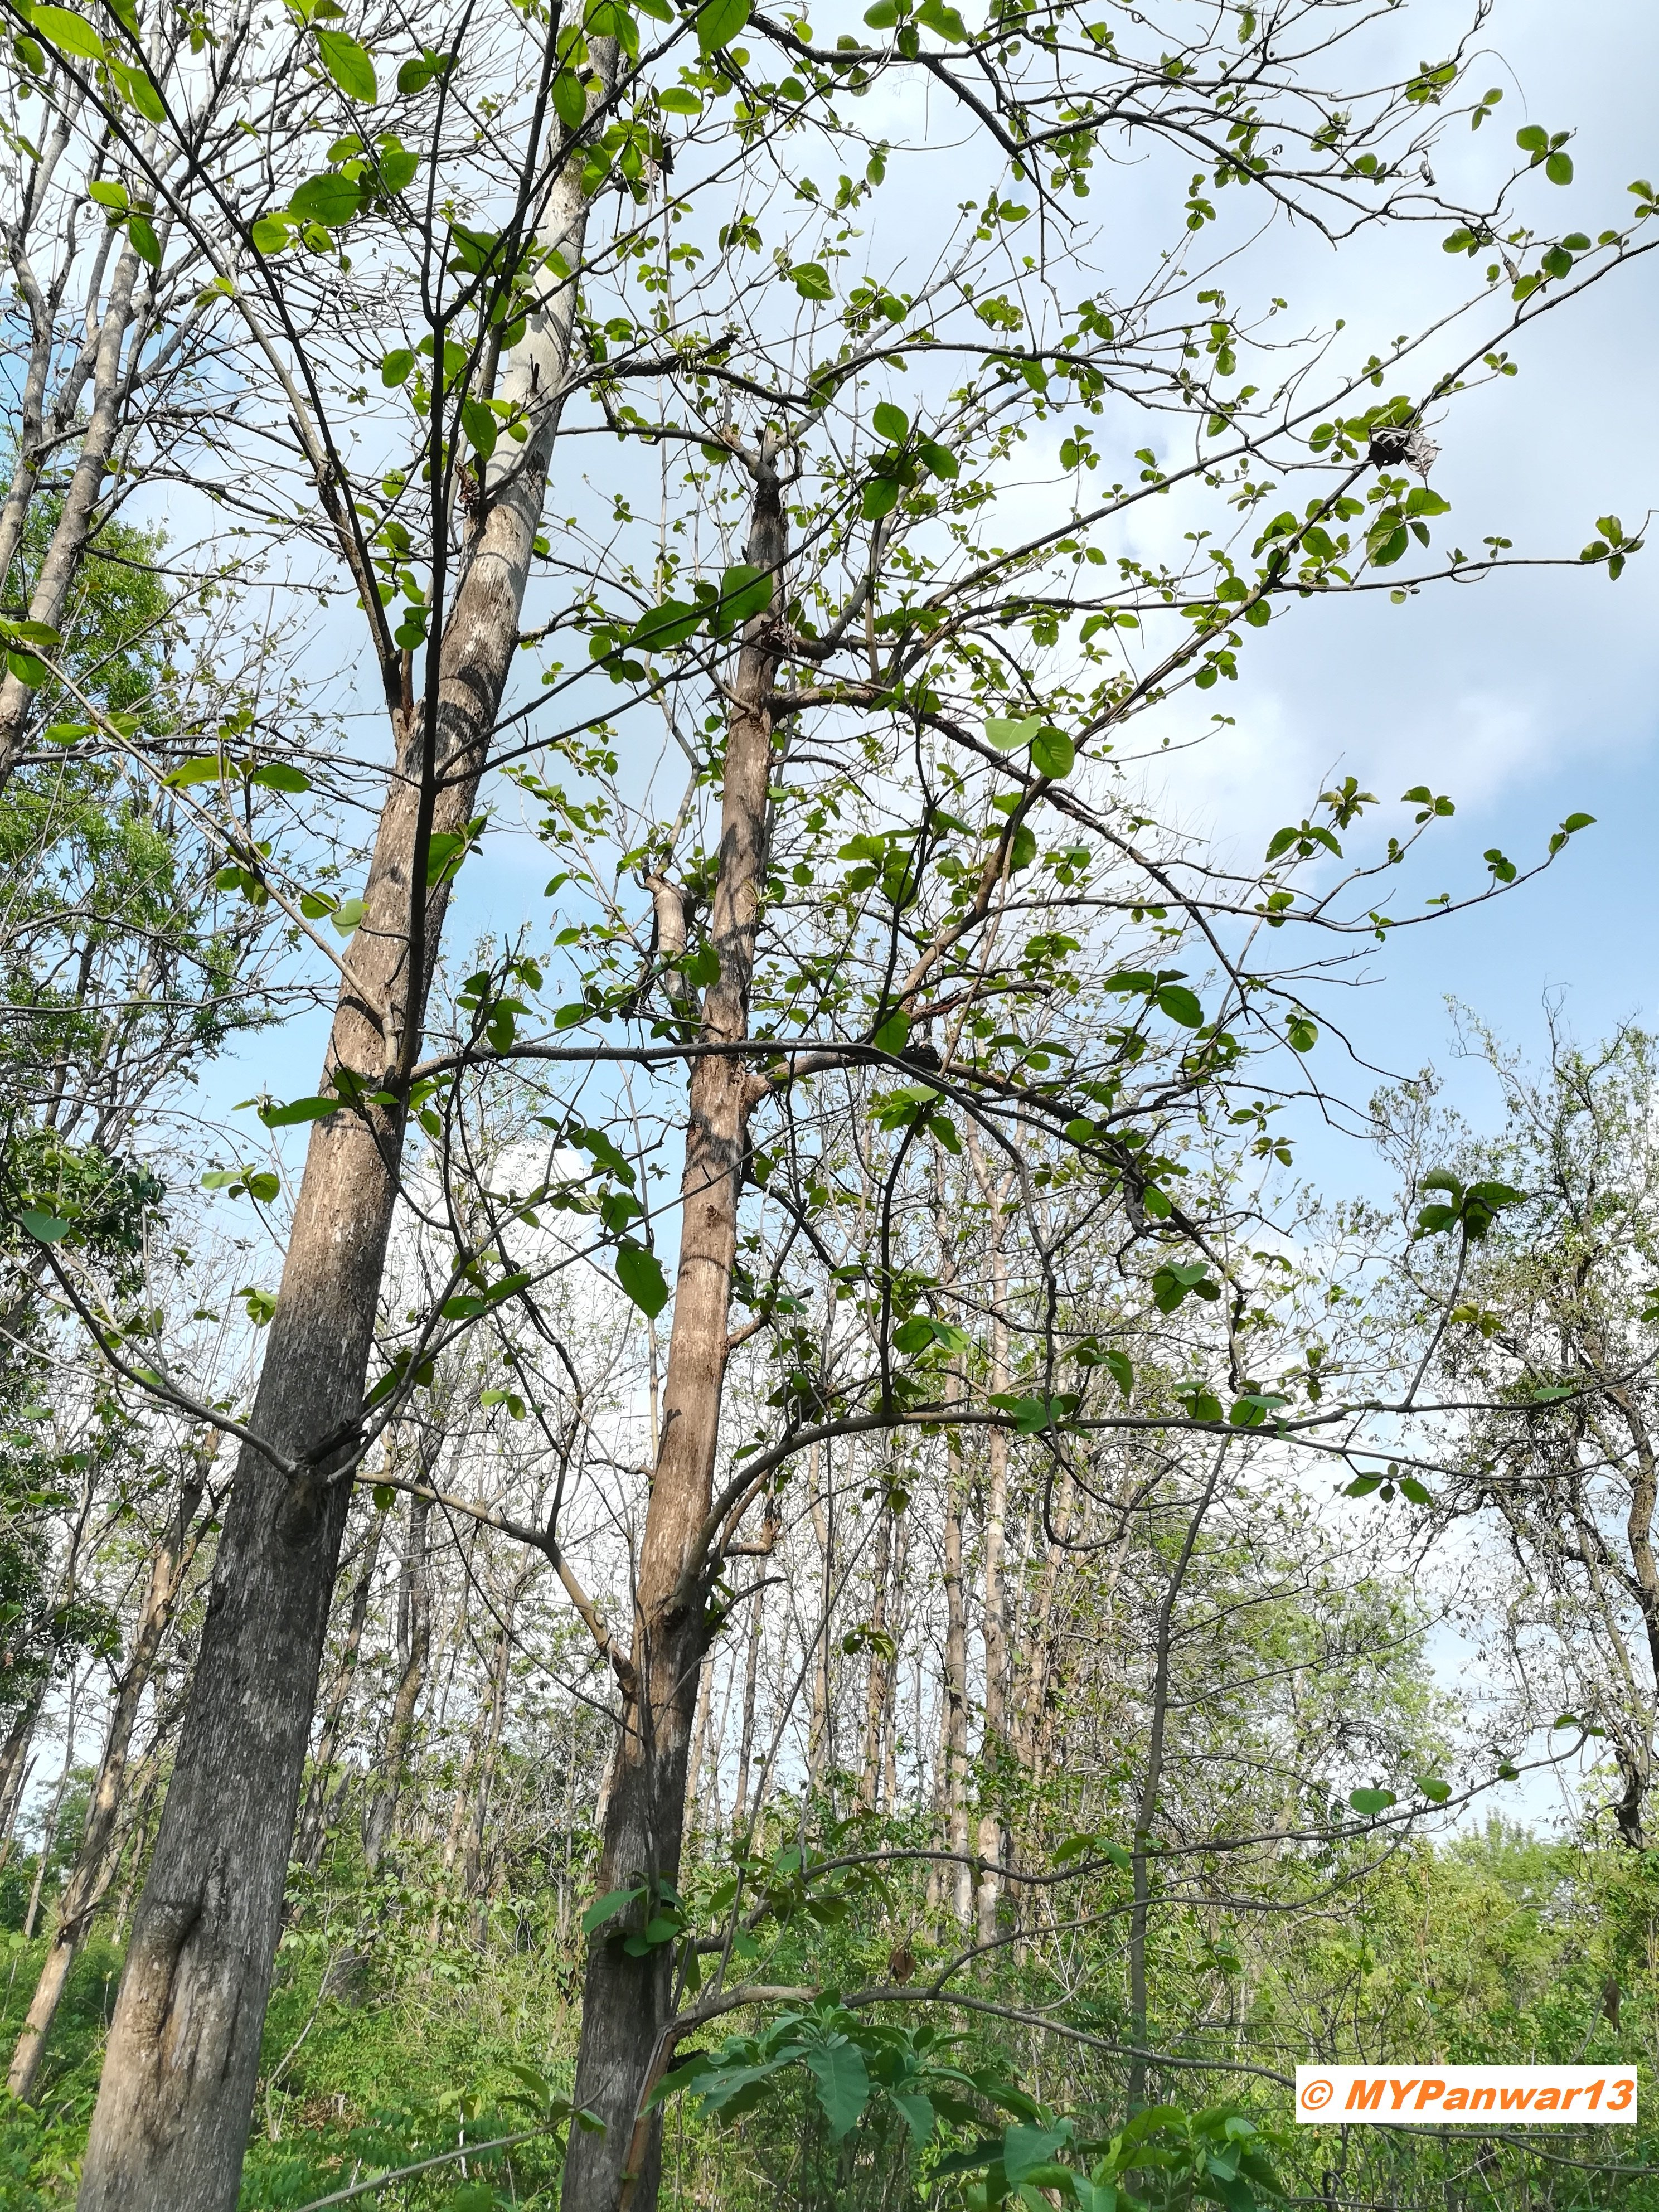 Leaves budding on the trees in the forest in spring season (pic taken by @MYPanwar13 in Dehradun, India